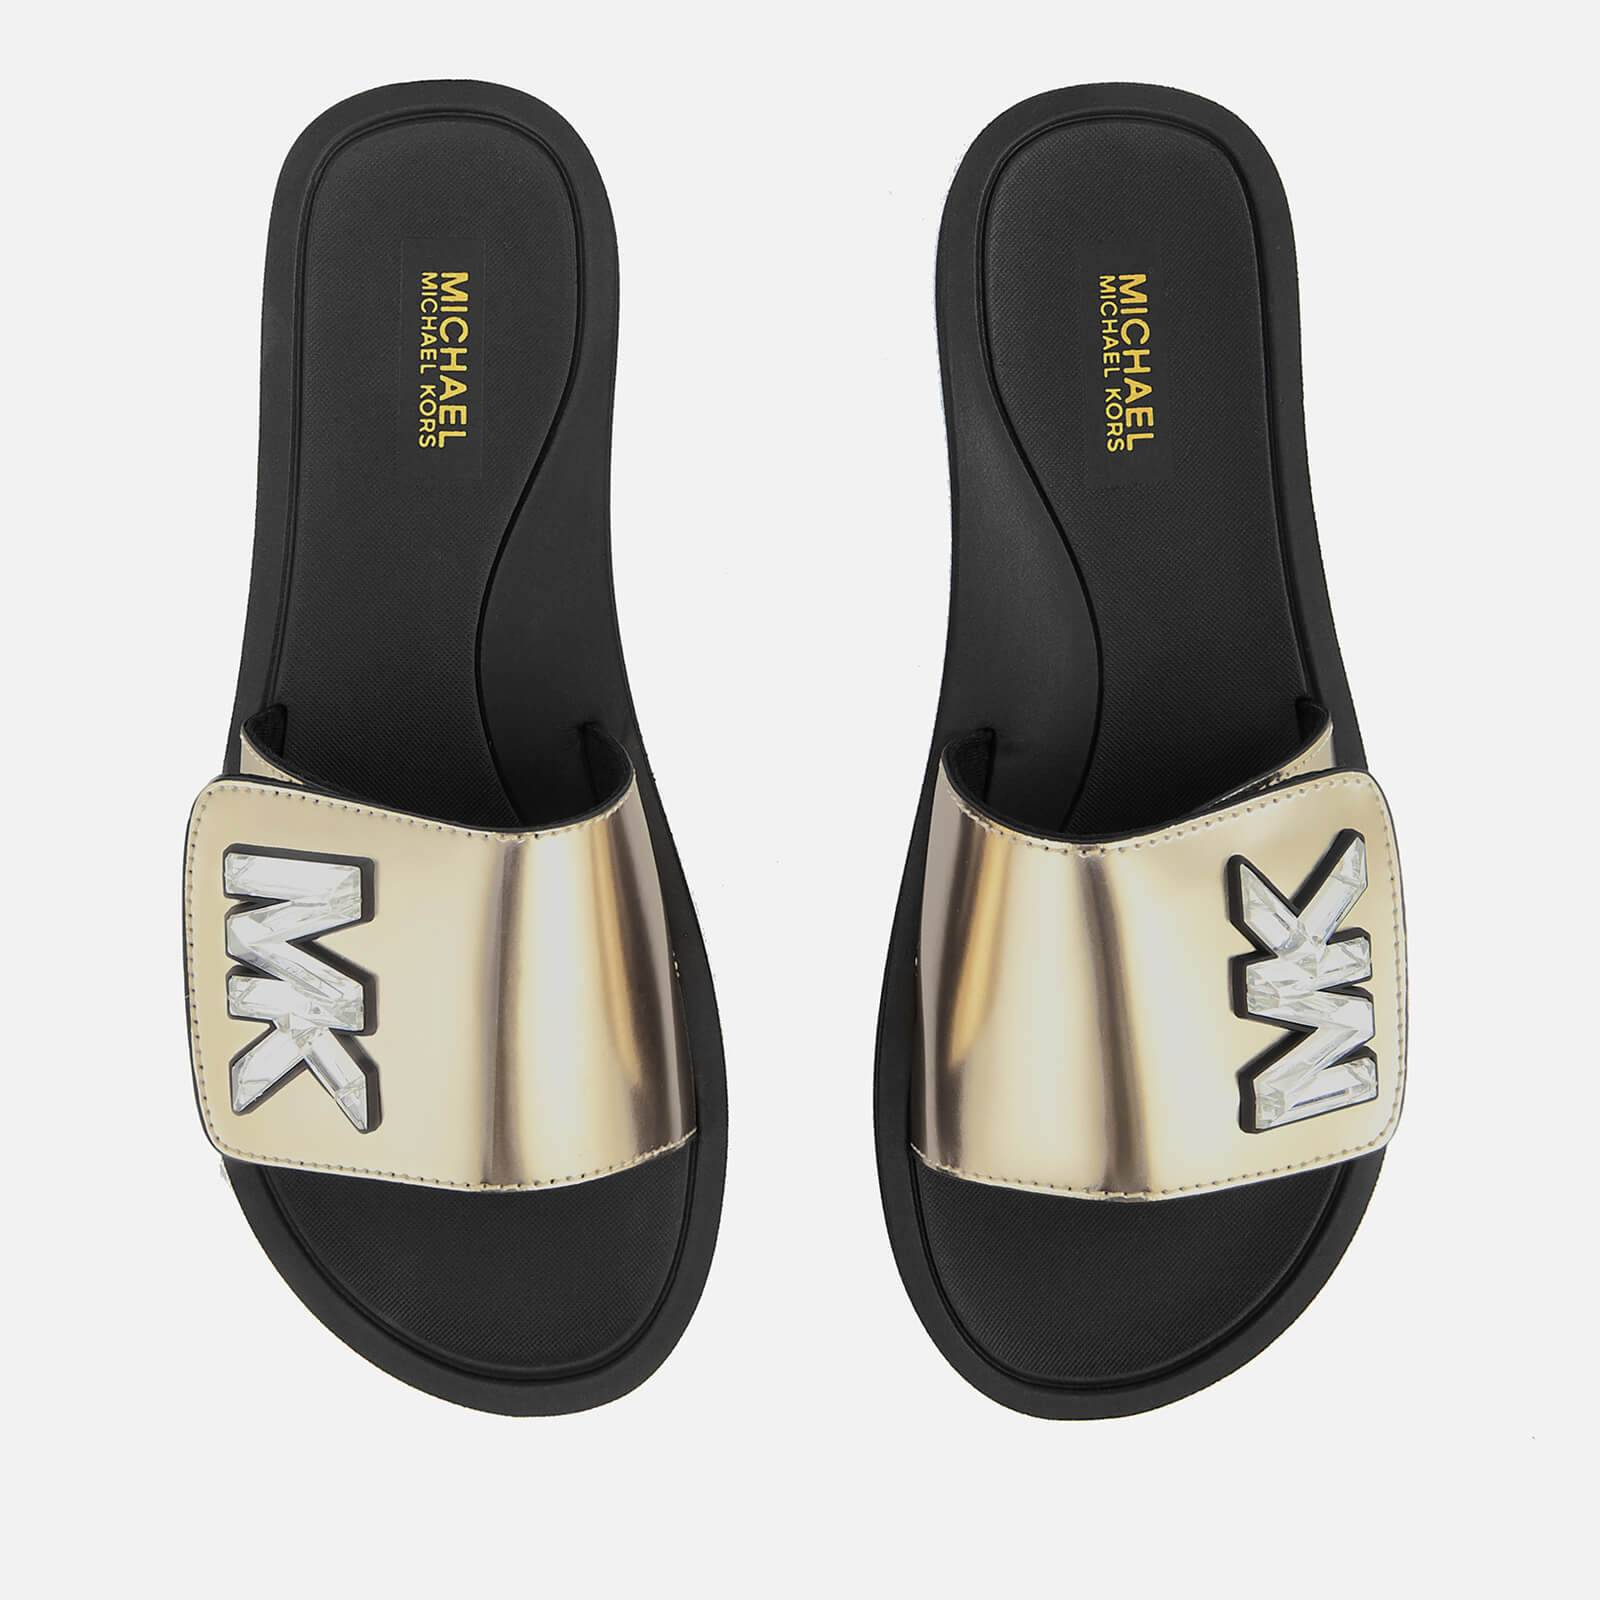 MICHAEL MICHAEL KORS Women's MK Slide Sandals - Pale Gold - UK 6/US 9 - Gold